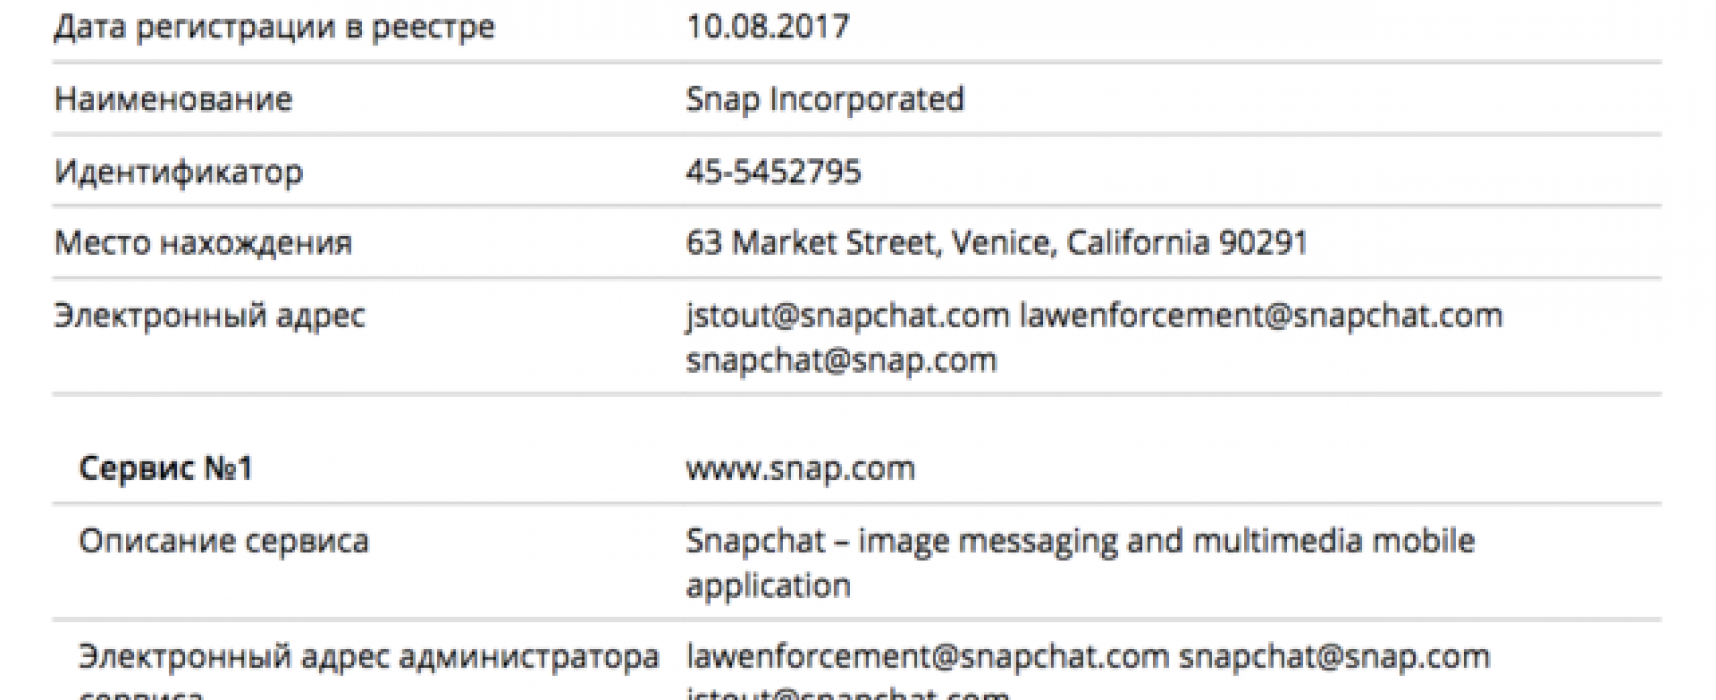 Russian federal censor adds Snapchat to government list of instant messengers without company's knowledge